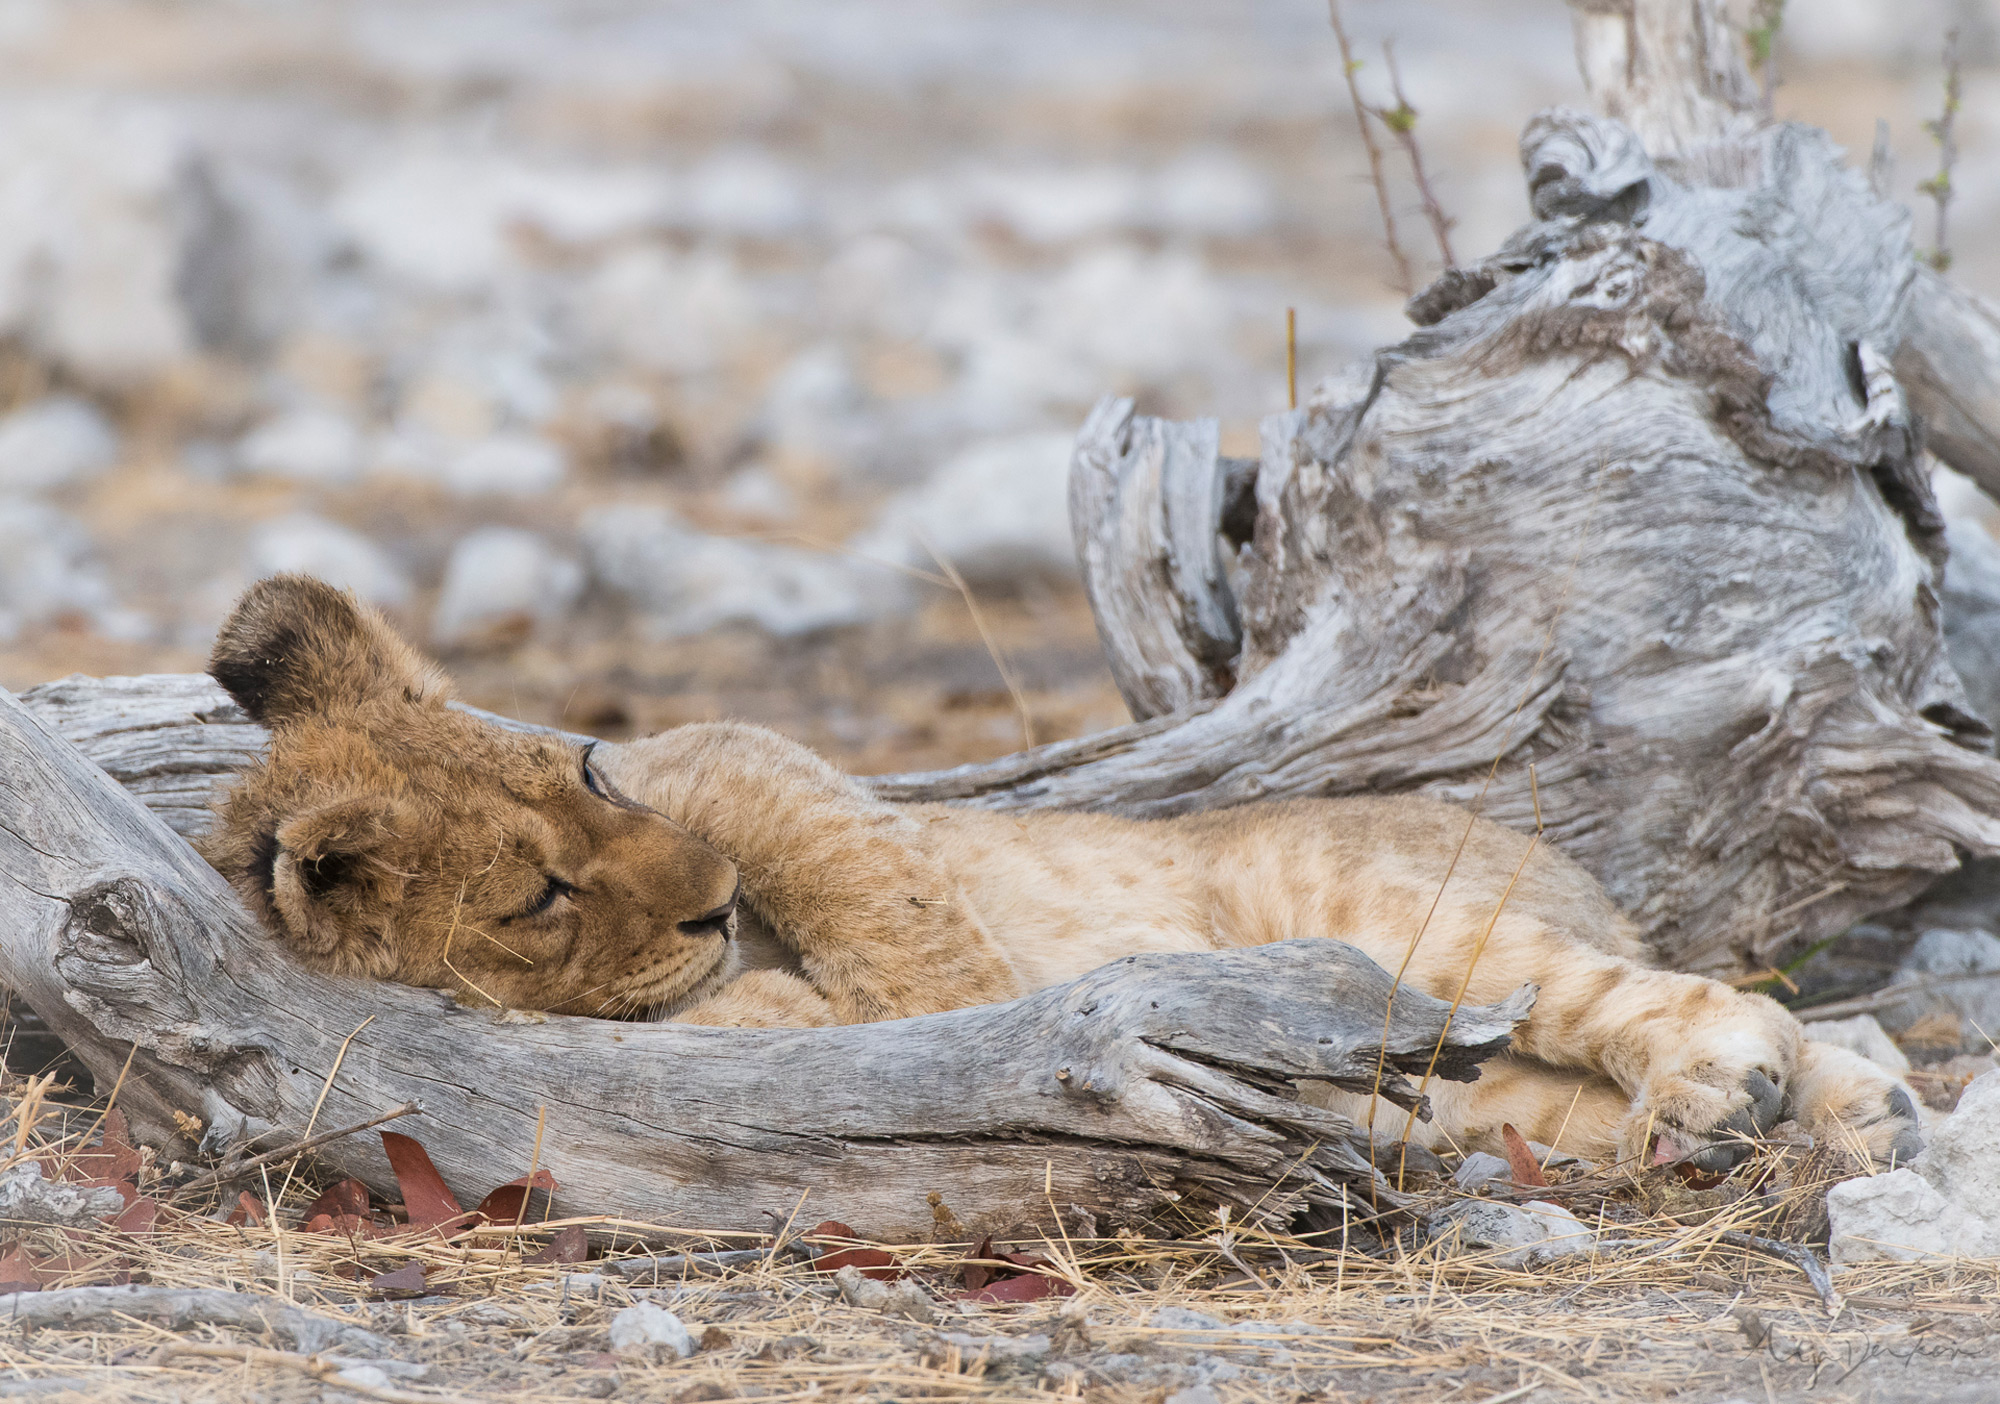 A lion cub fast asleep between the branches of a fallen tree, Etosha National Park, Namibia